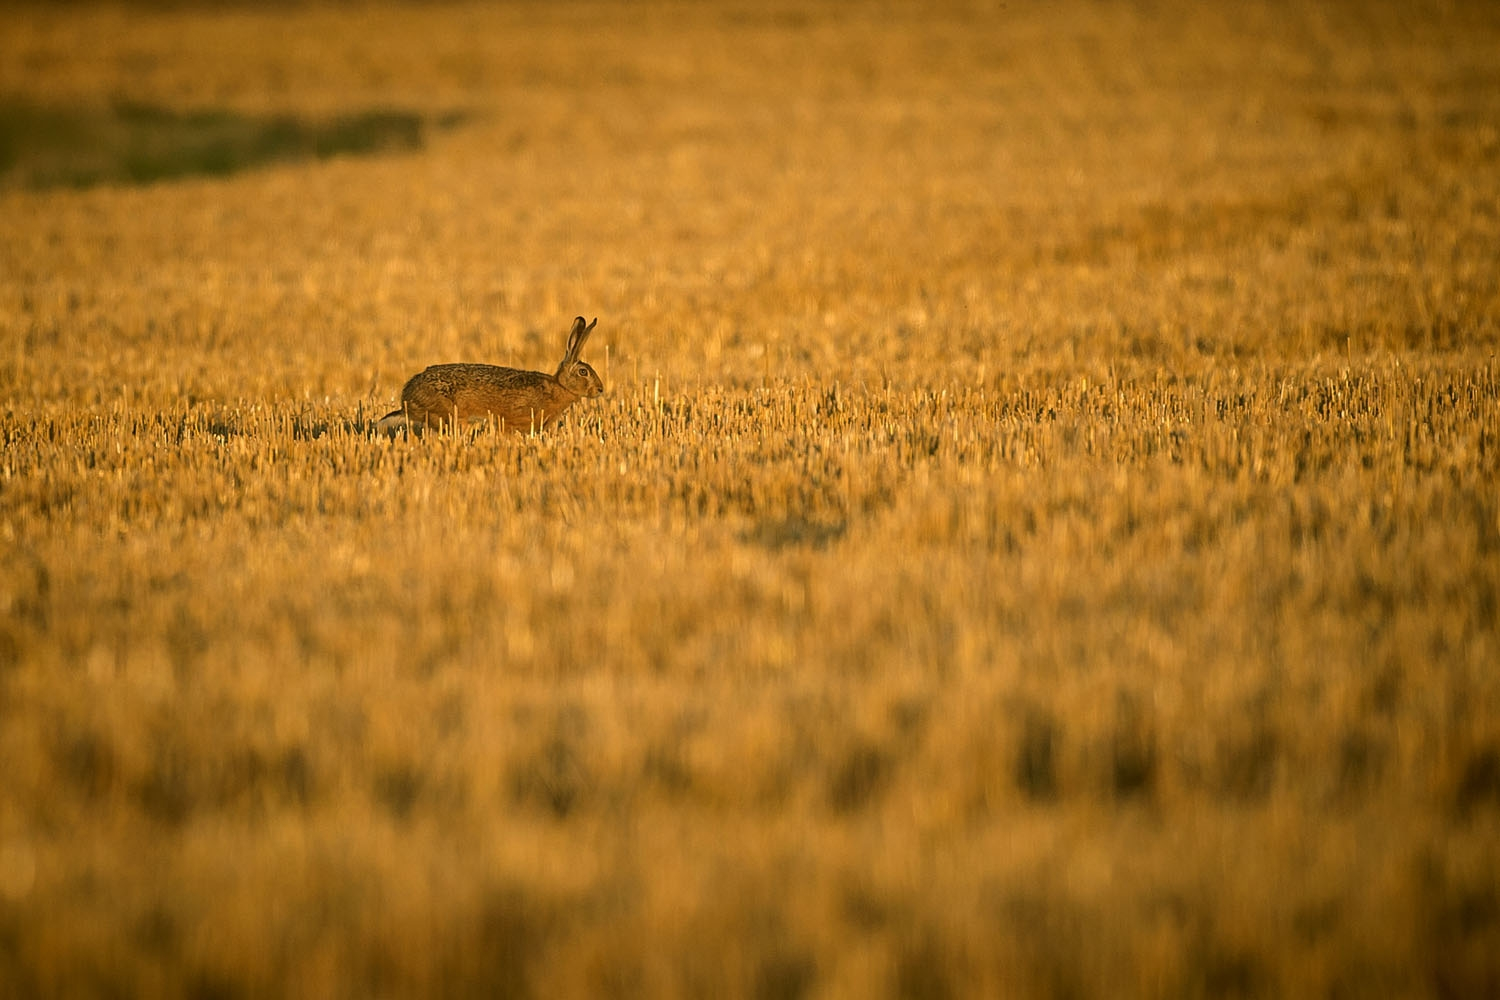 A hare runs in a field on July 4, 2017 near Monthodon, central France.